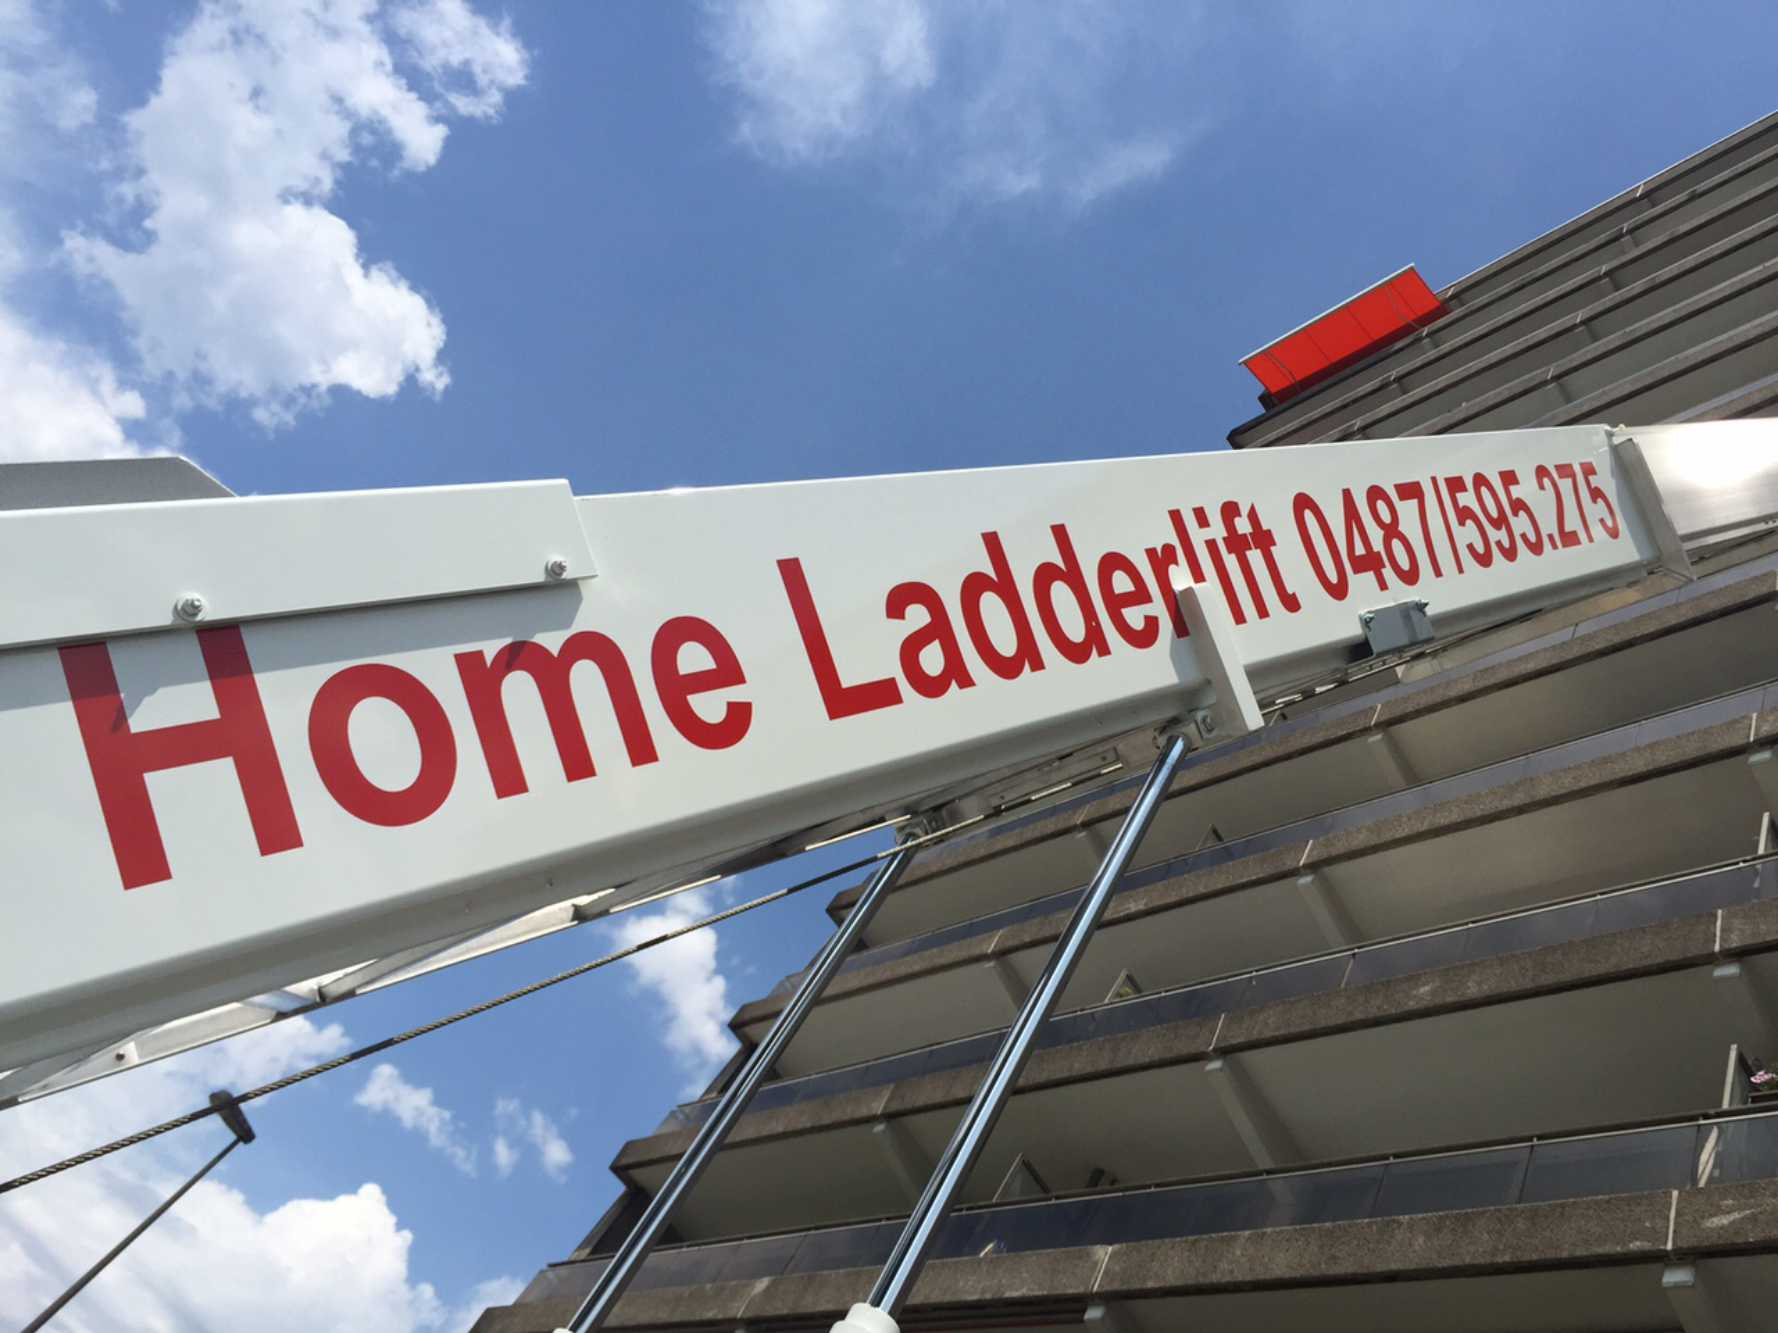 Home Ladderlift Merksem